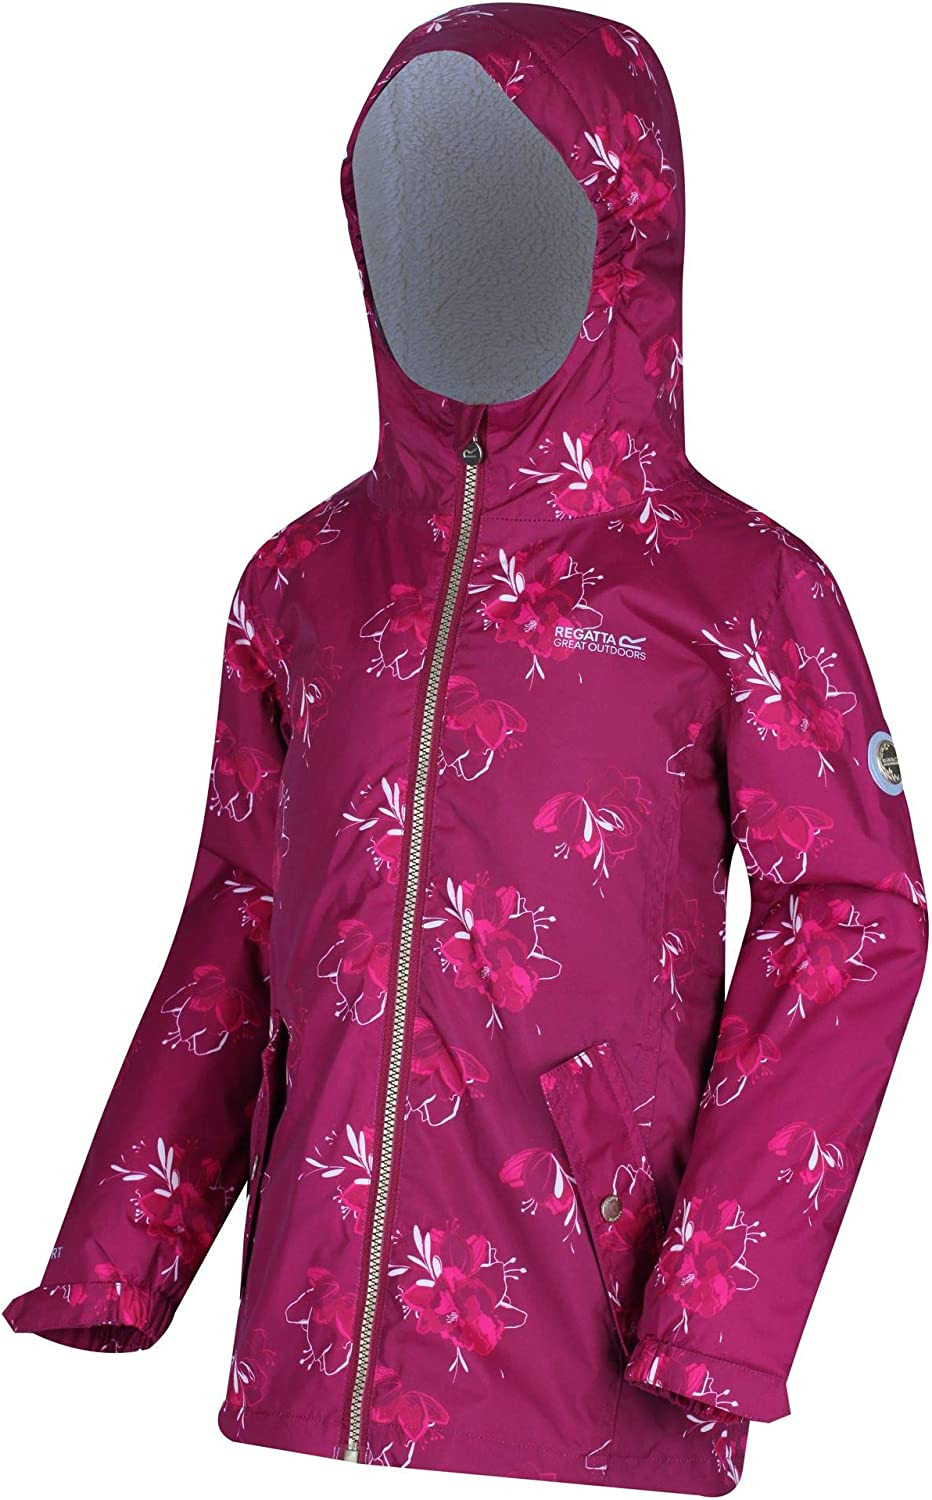 Regatta Childrens Braylee Waterproof Reflective Hooded Jacket Insulated